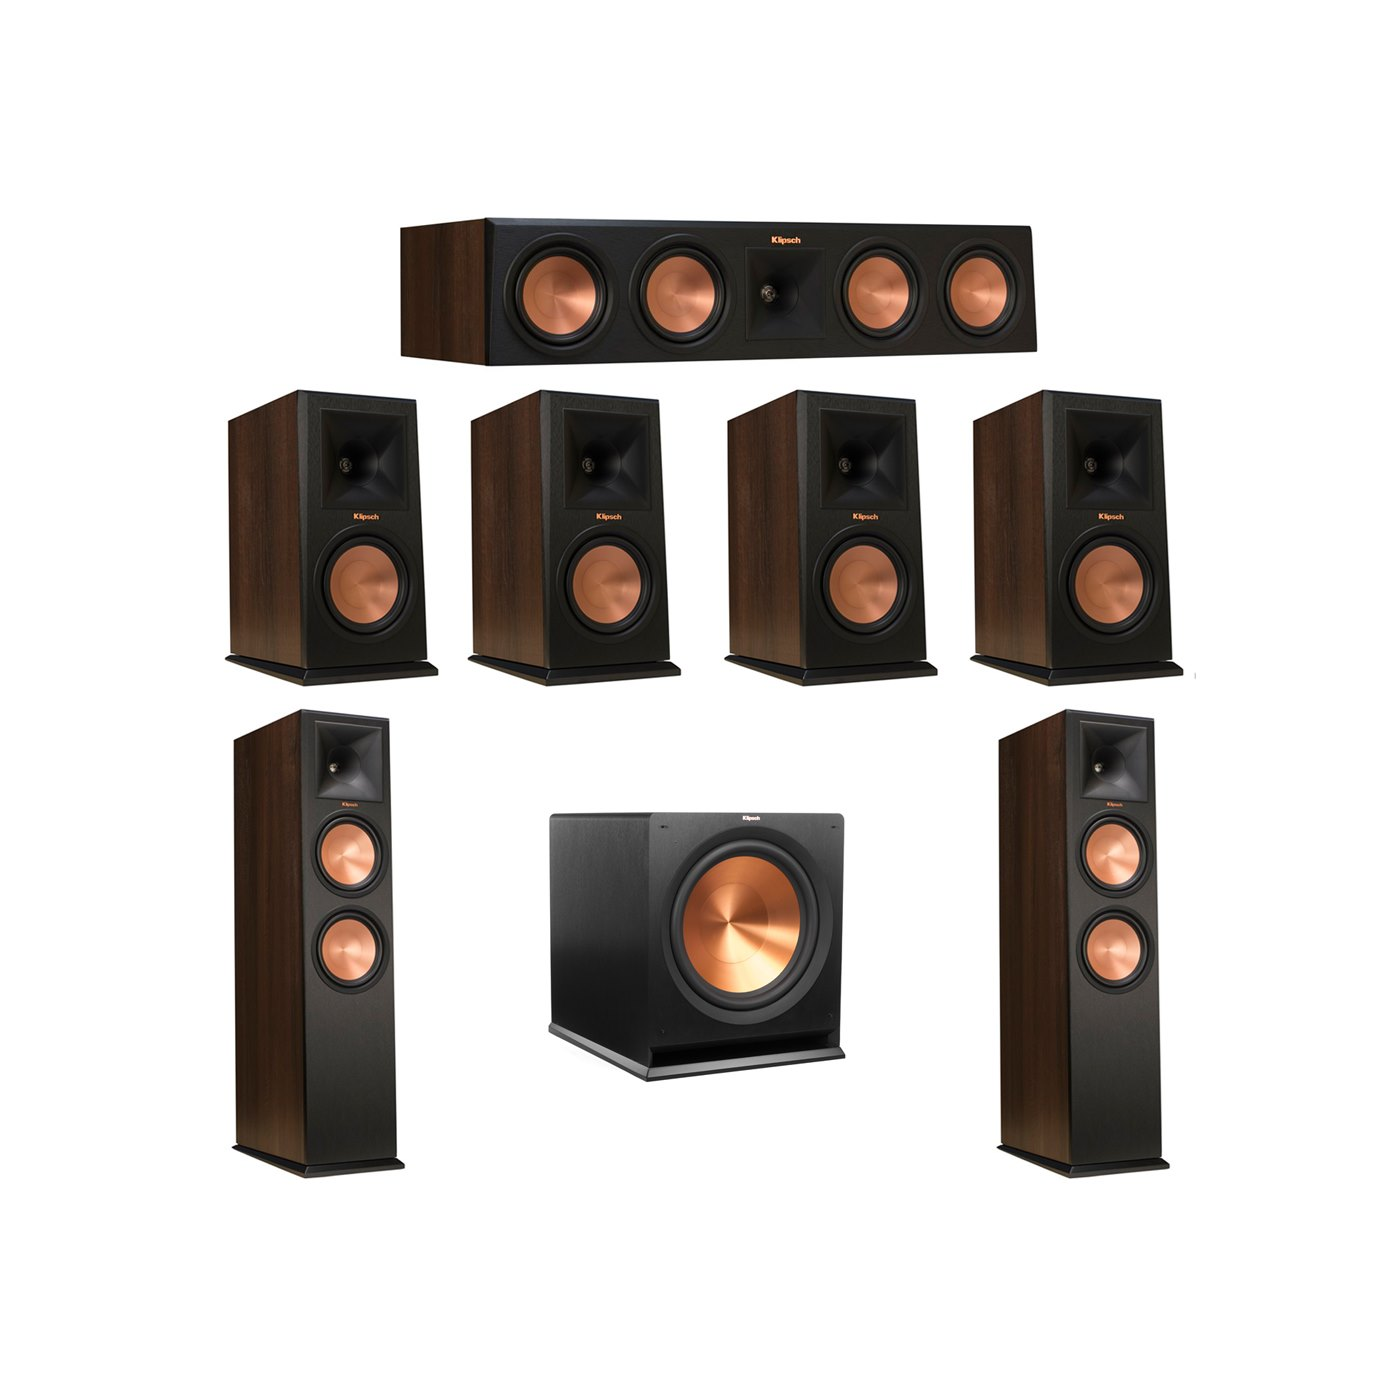 Klipsch 7.1 Walnut System with 2 RP-280F Tower Speakers, 1 RP-450C Center Speaker, 4 Klipsch RP-160M Bookshelf Speakers, 1 Klipsch R-115SW Subwoofer